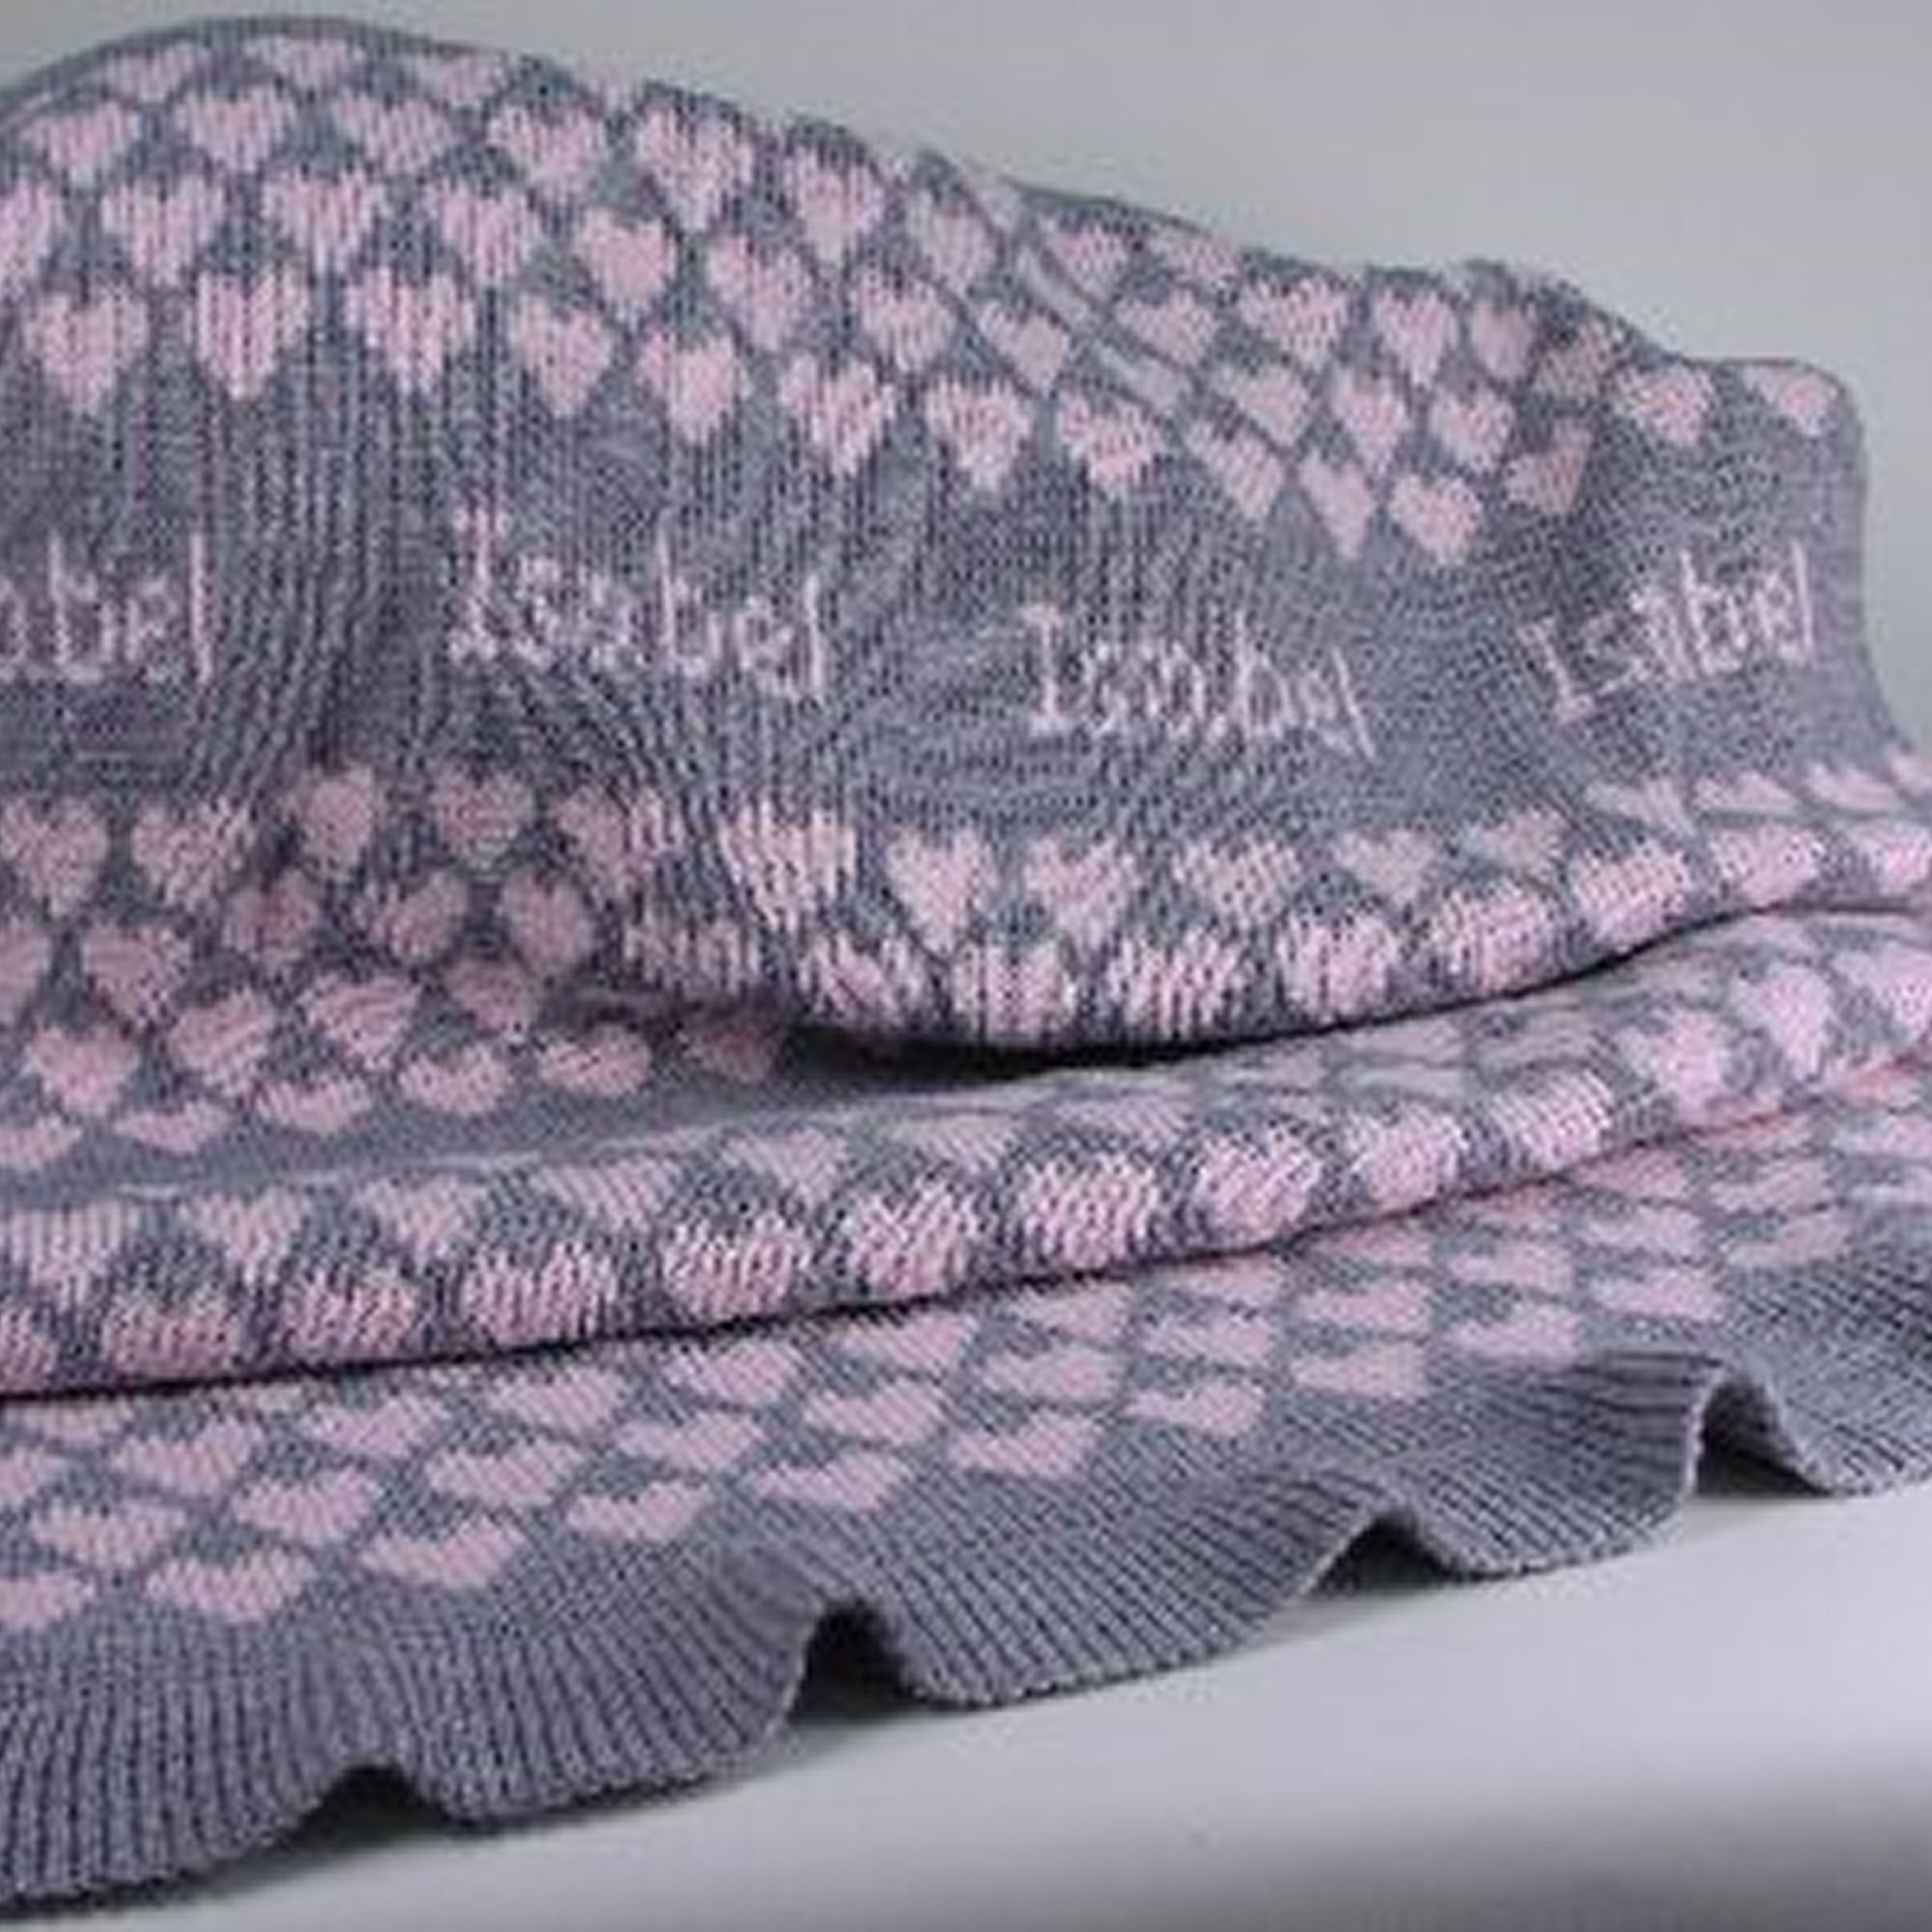 Unique Baby Blankets Awesome Personalized Knit Baby Blanket Pink & Gray Of Innovative 40 Ideas Unique Baby Blankets